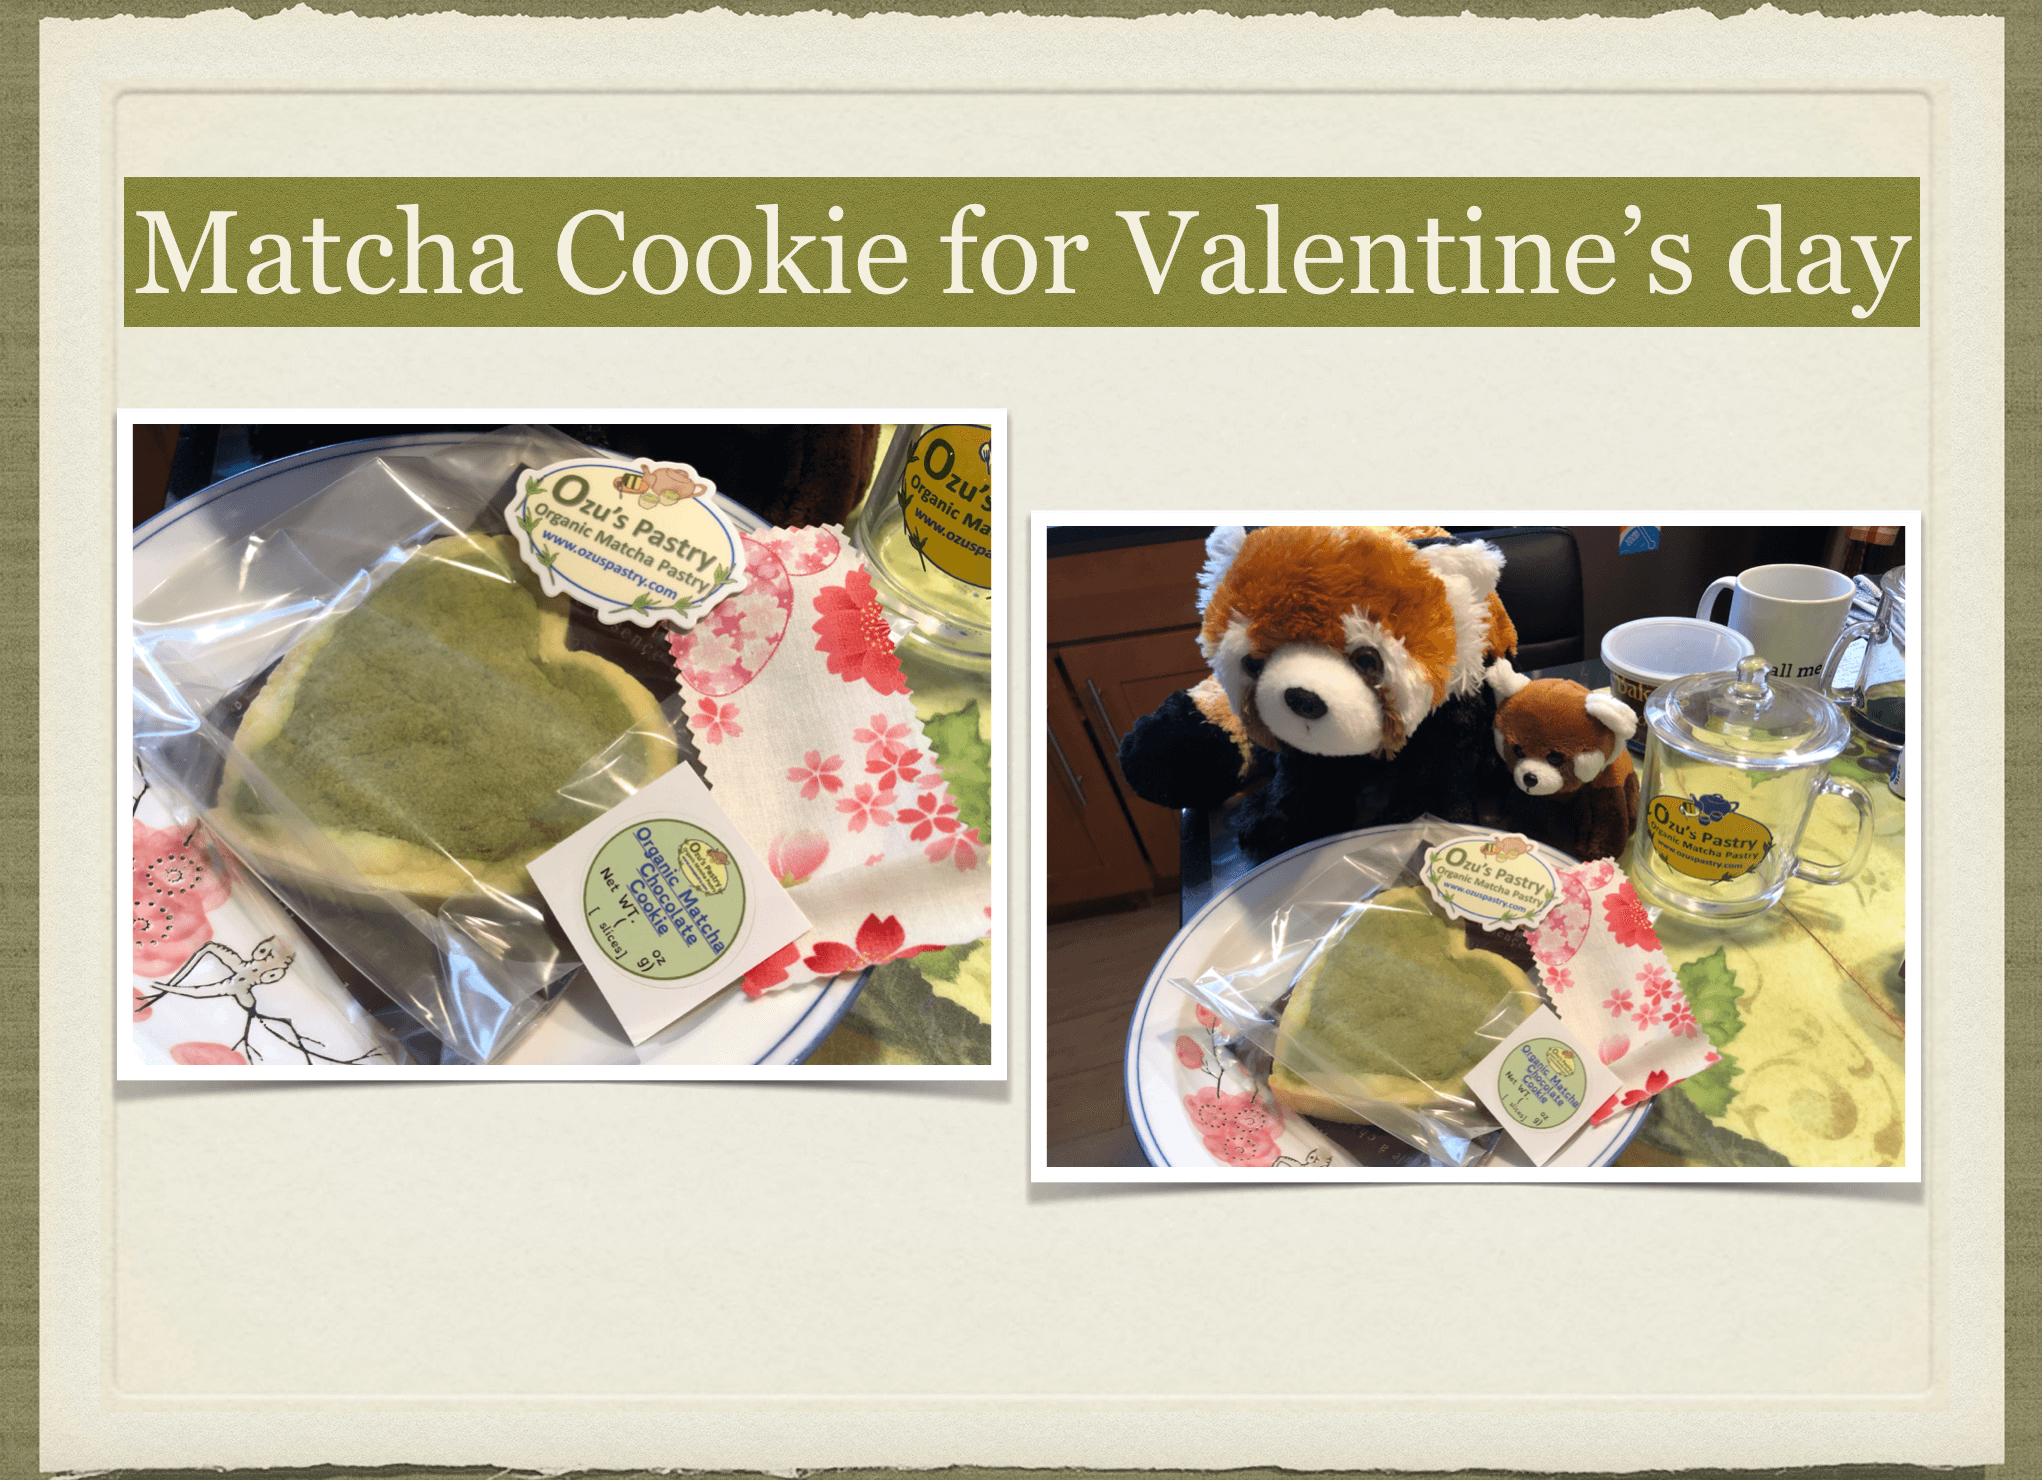 Matcha cokie for Valentines day 2